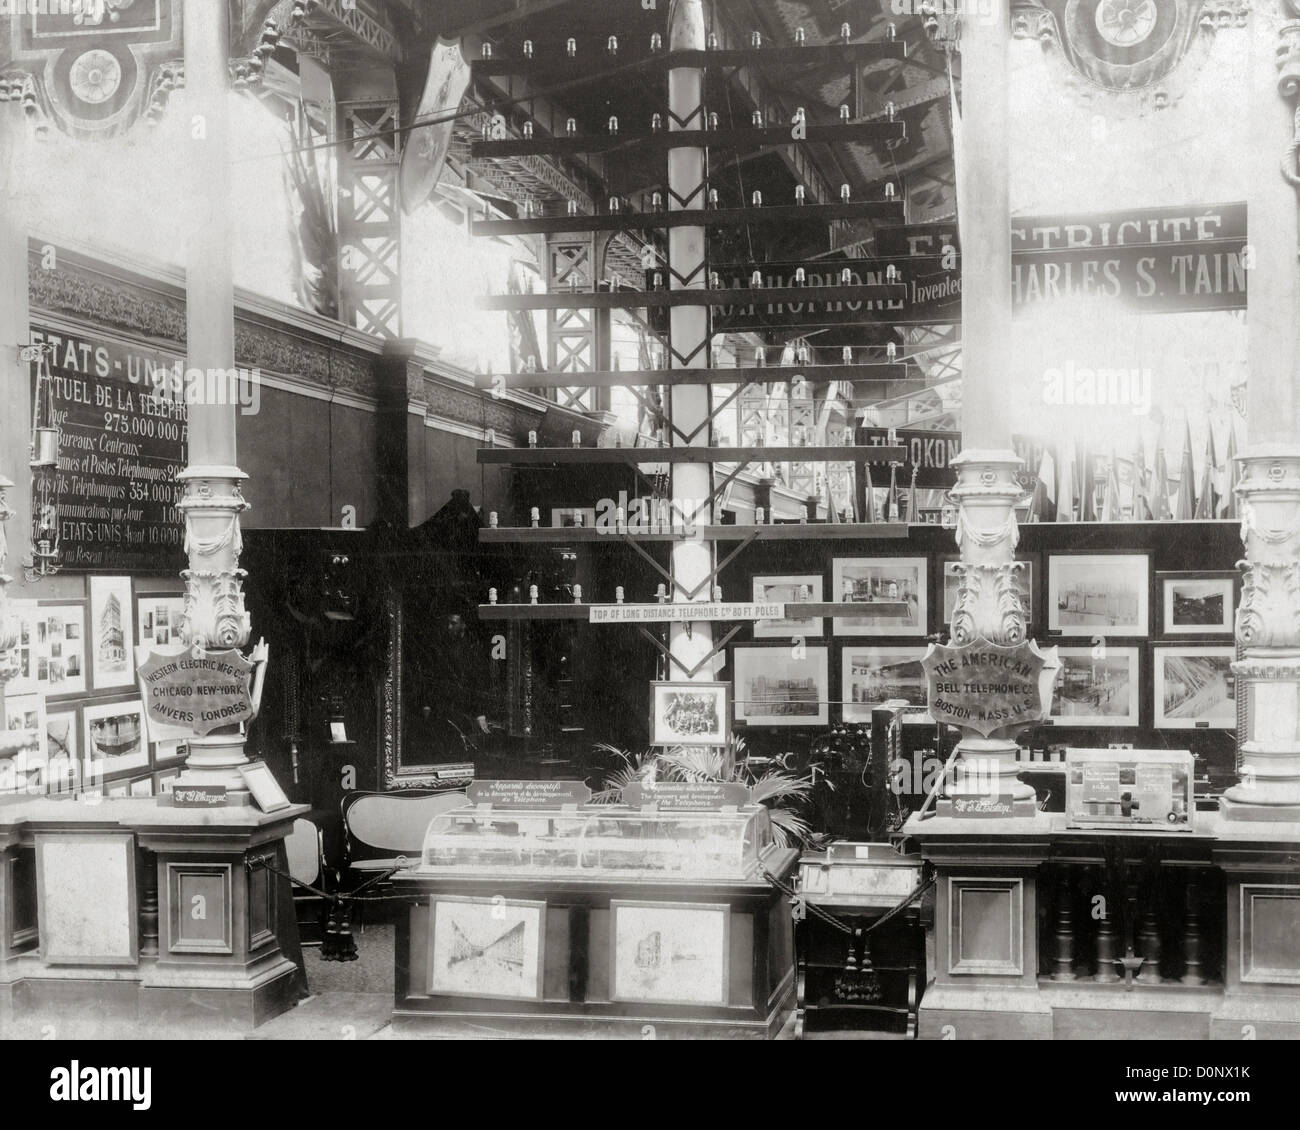 Bell Telephone Exhibit at Paris Exposition of 1889 - Stock Image